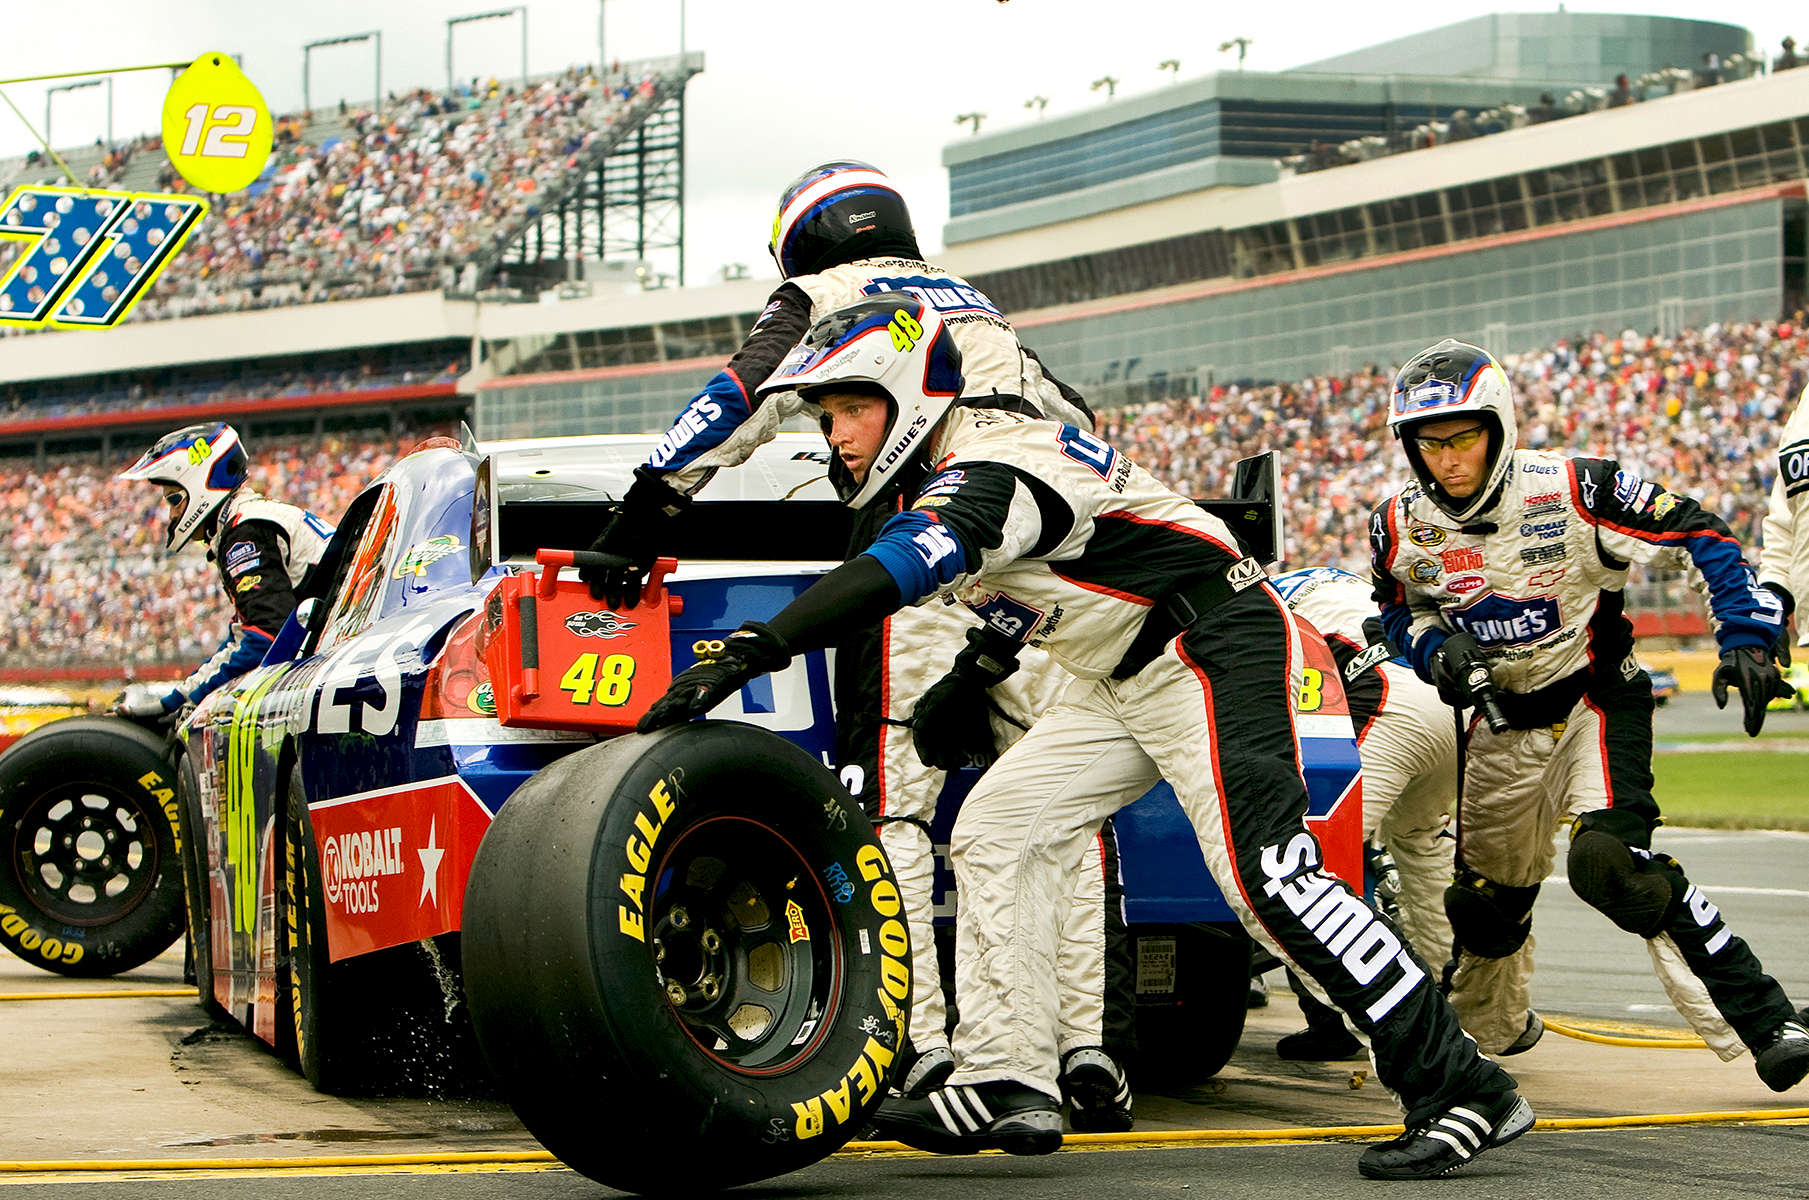 Members of Team Lowe's, the no. 48 Lowe's Chevy Monte Carlo driven by Jimmie Johnson, hustle during a pit stop in the 2009 Coca-Cola Classic 600 race at the Lowe's Motor Speedway, in Concord, NC. NASCAR Driver David Reutimann won his first Cup race during the rain-shortened event, held May 25, 2009. NASCAR's longest scheduled race went only 227 laps, or 340.5 miles, before officials ended it because of rain. The 2009 race was the 50th running of the Coca-Cola 600. Ryan Newman and Robby Gordon finished second and third respectively.